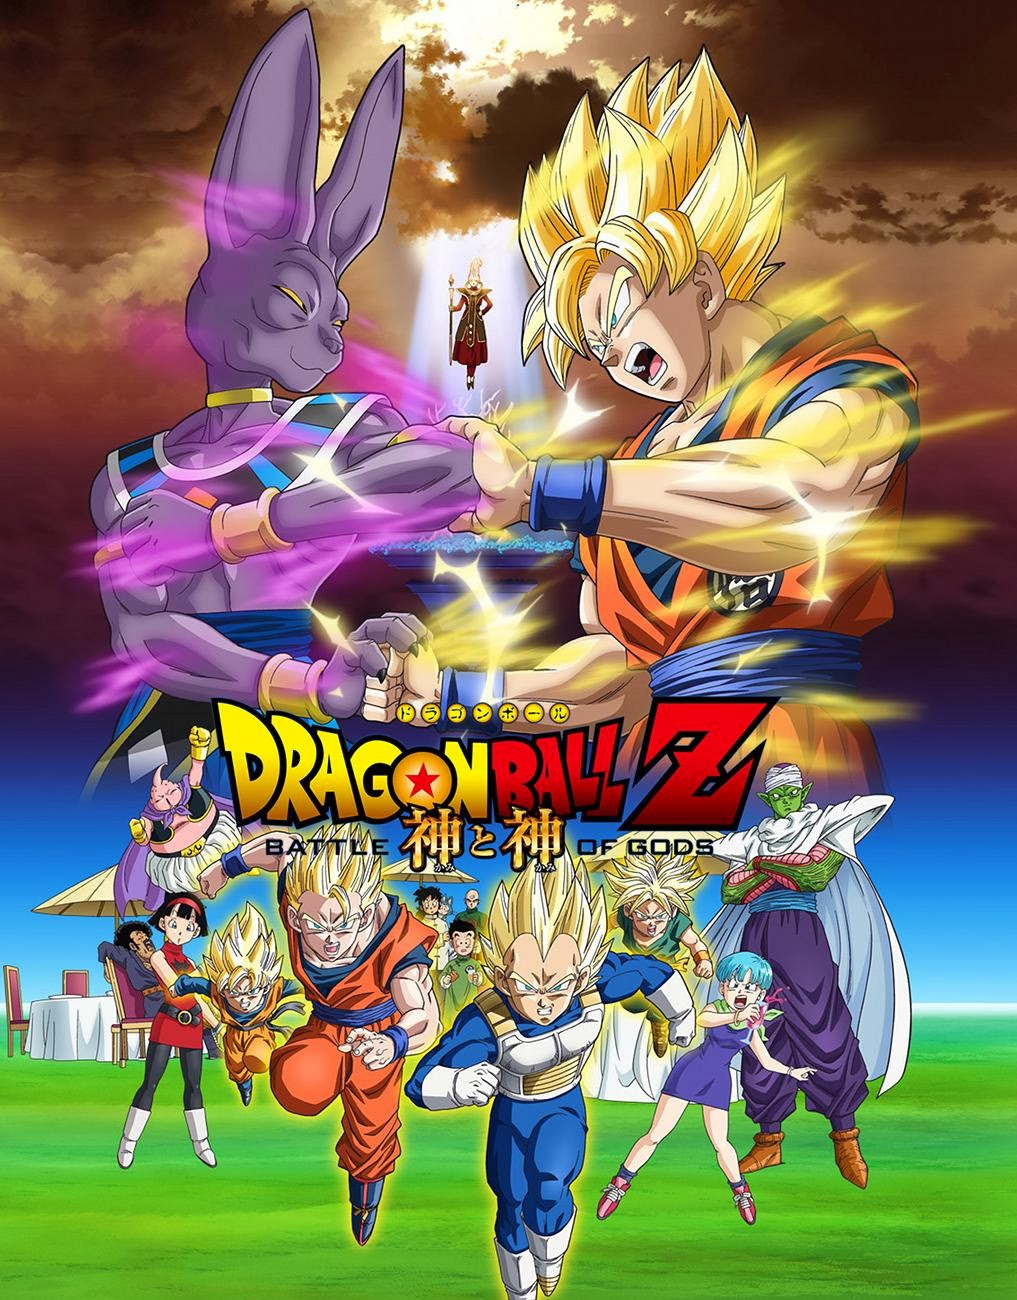 de3b253a0a Download Dragon Ball Z   A Batalha dos Deuses Dublado